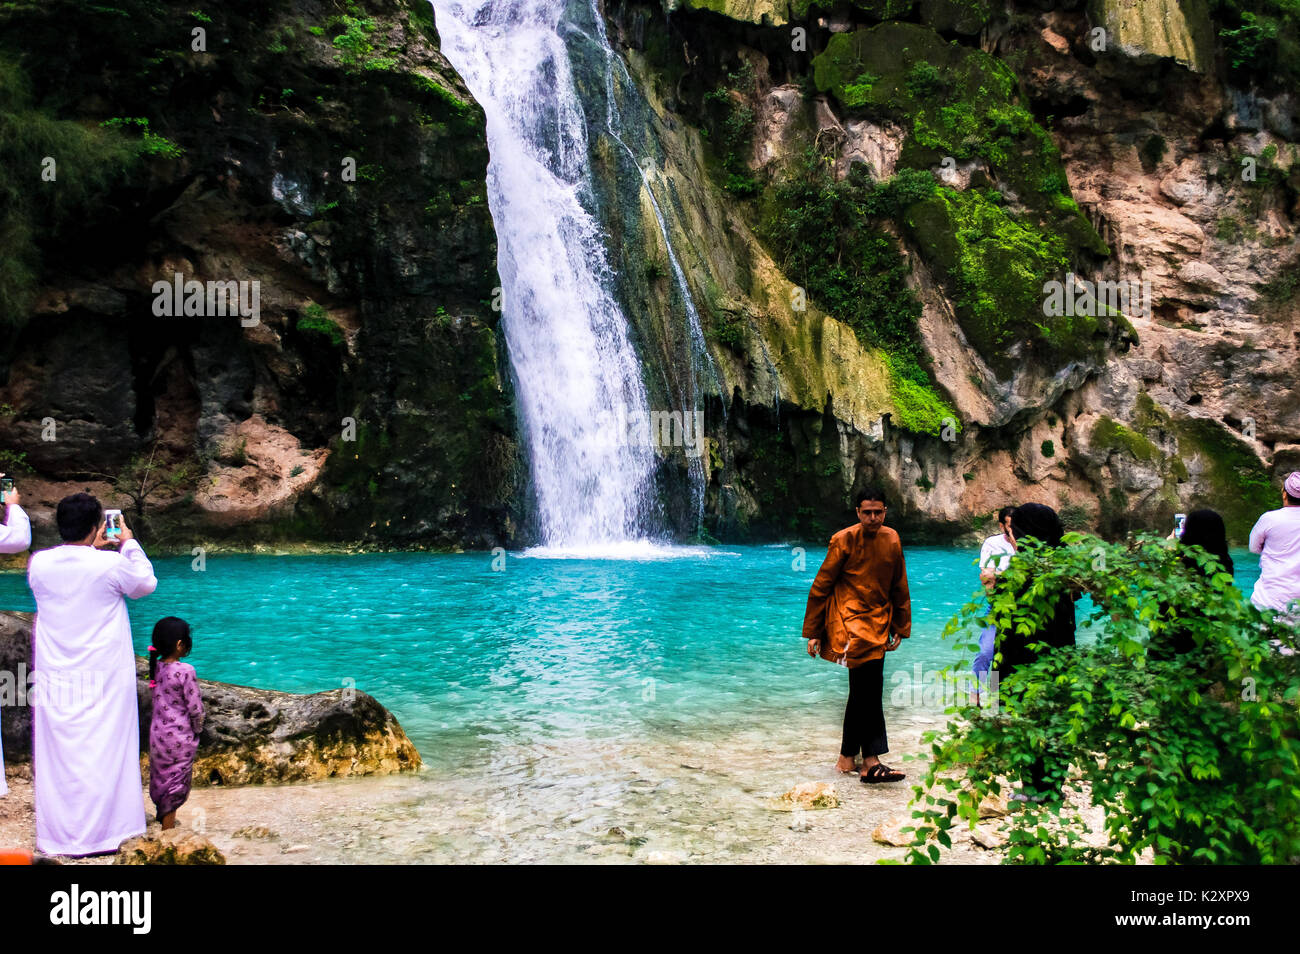 The waterfall in Ayn Athum, Oman - Stock Image